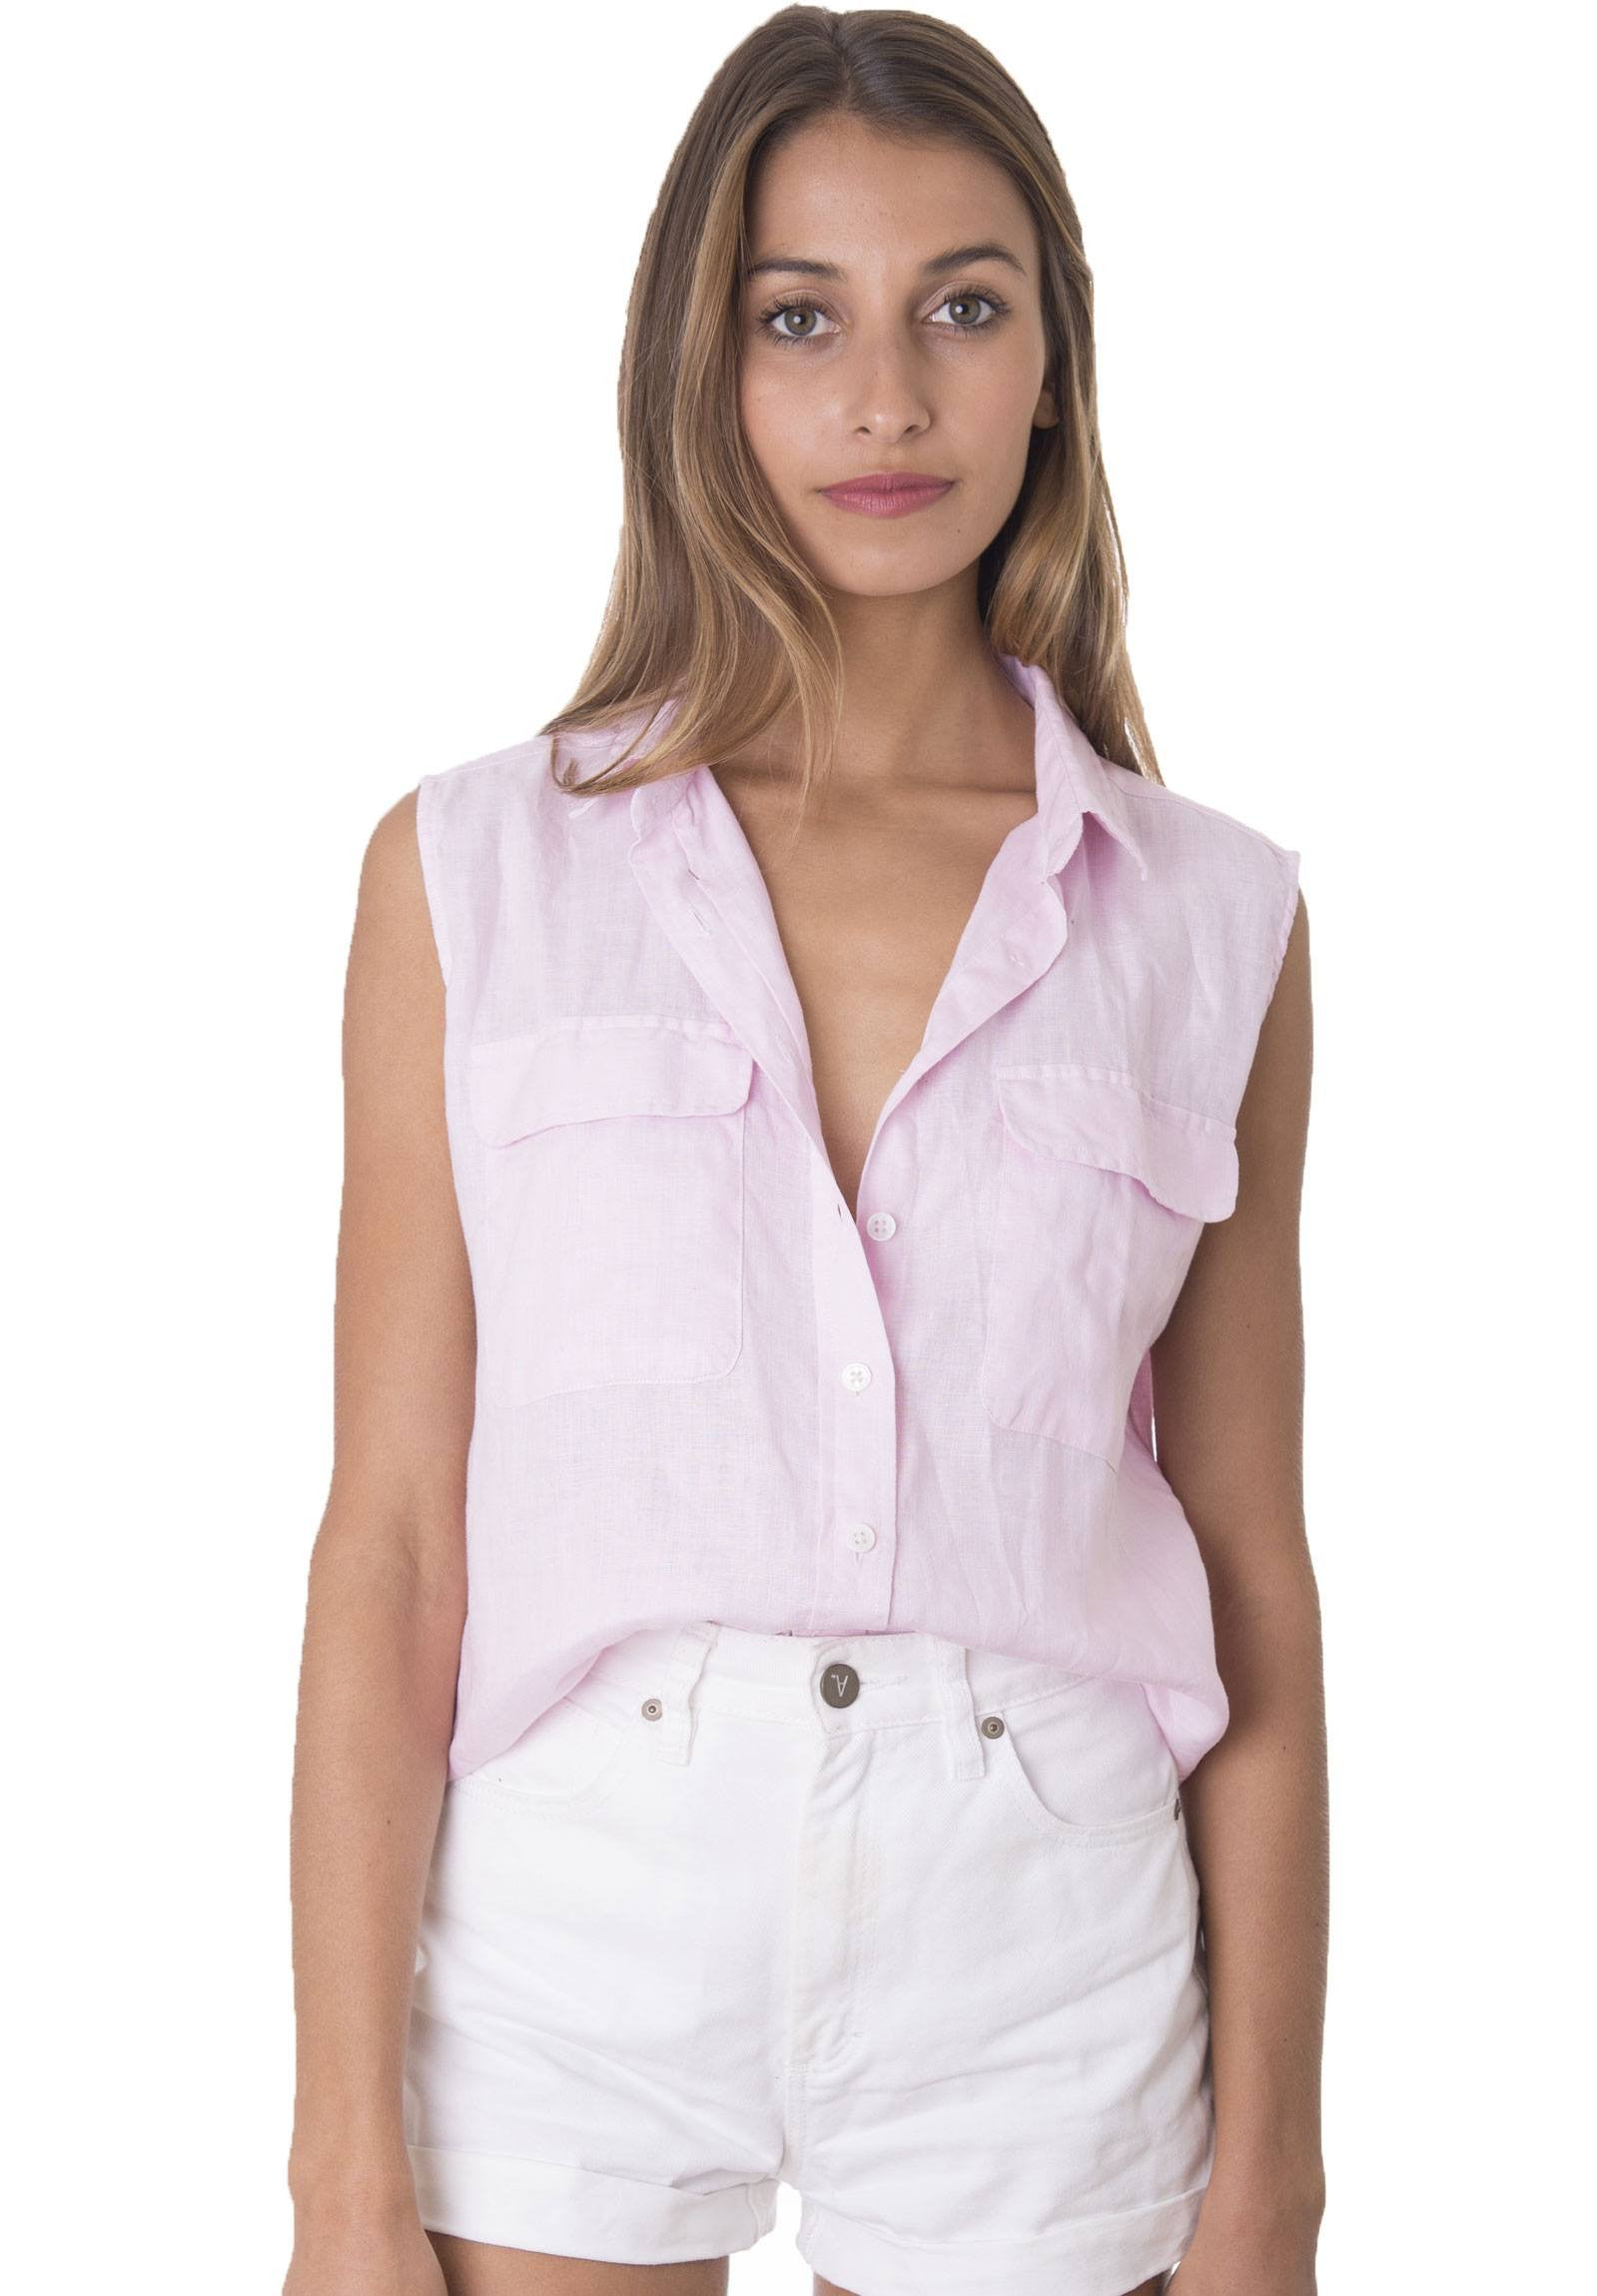 Aura Pink, Sleeveless Linen Shirt with Pockets